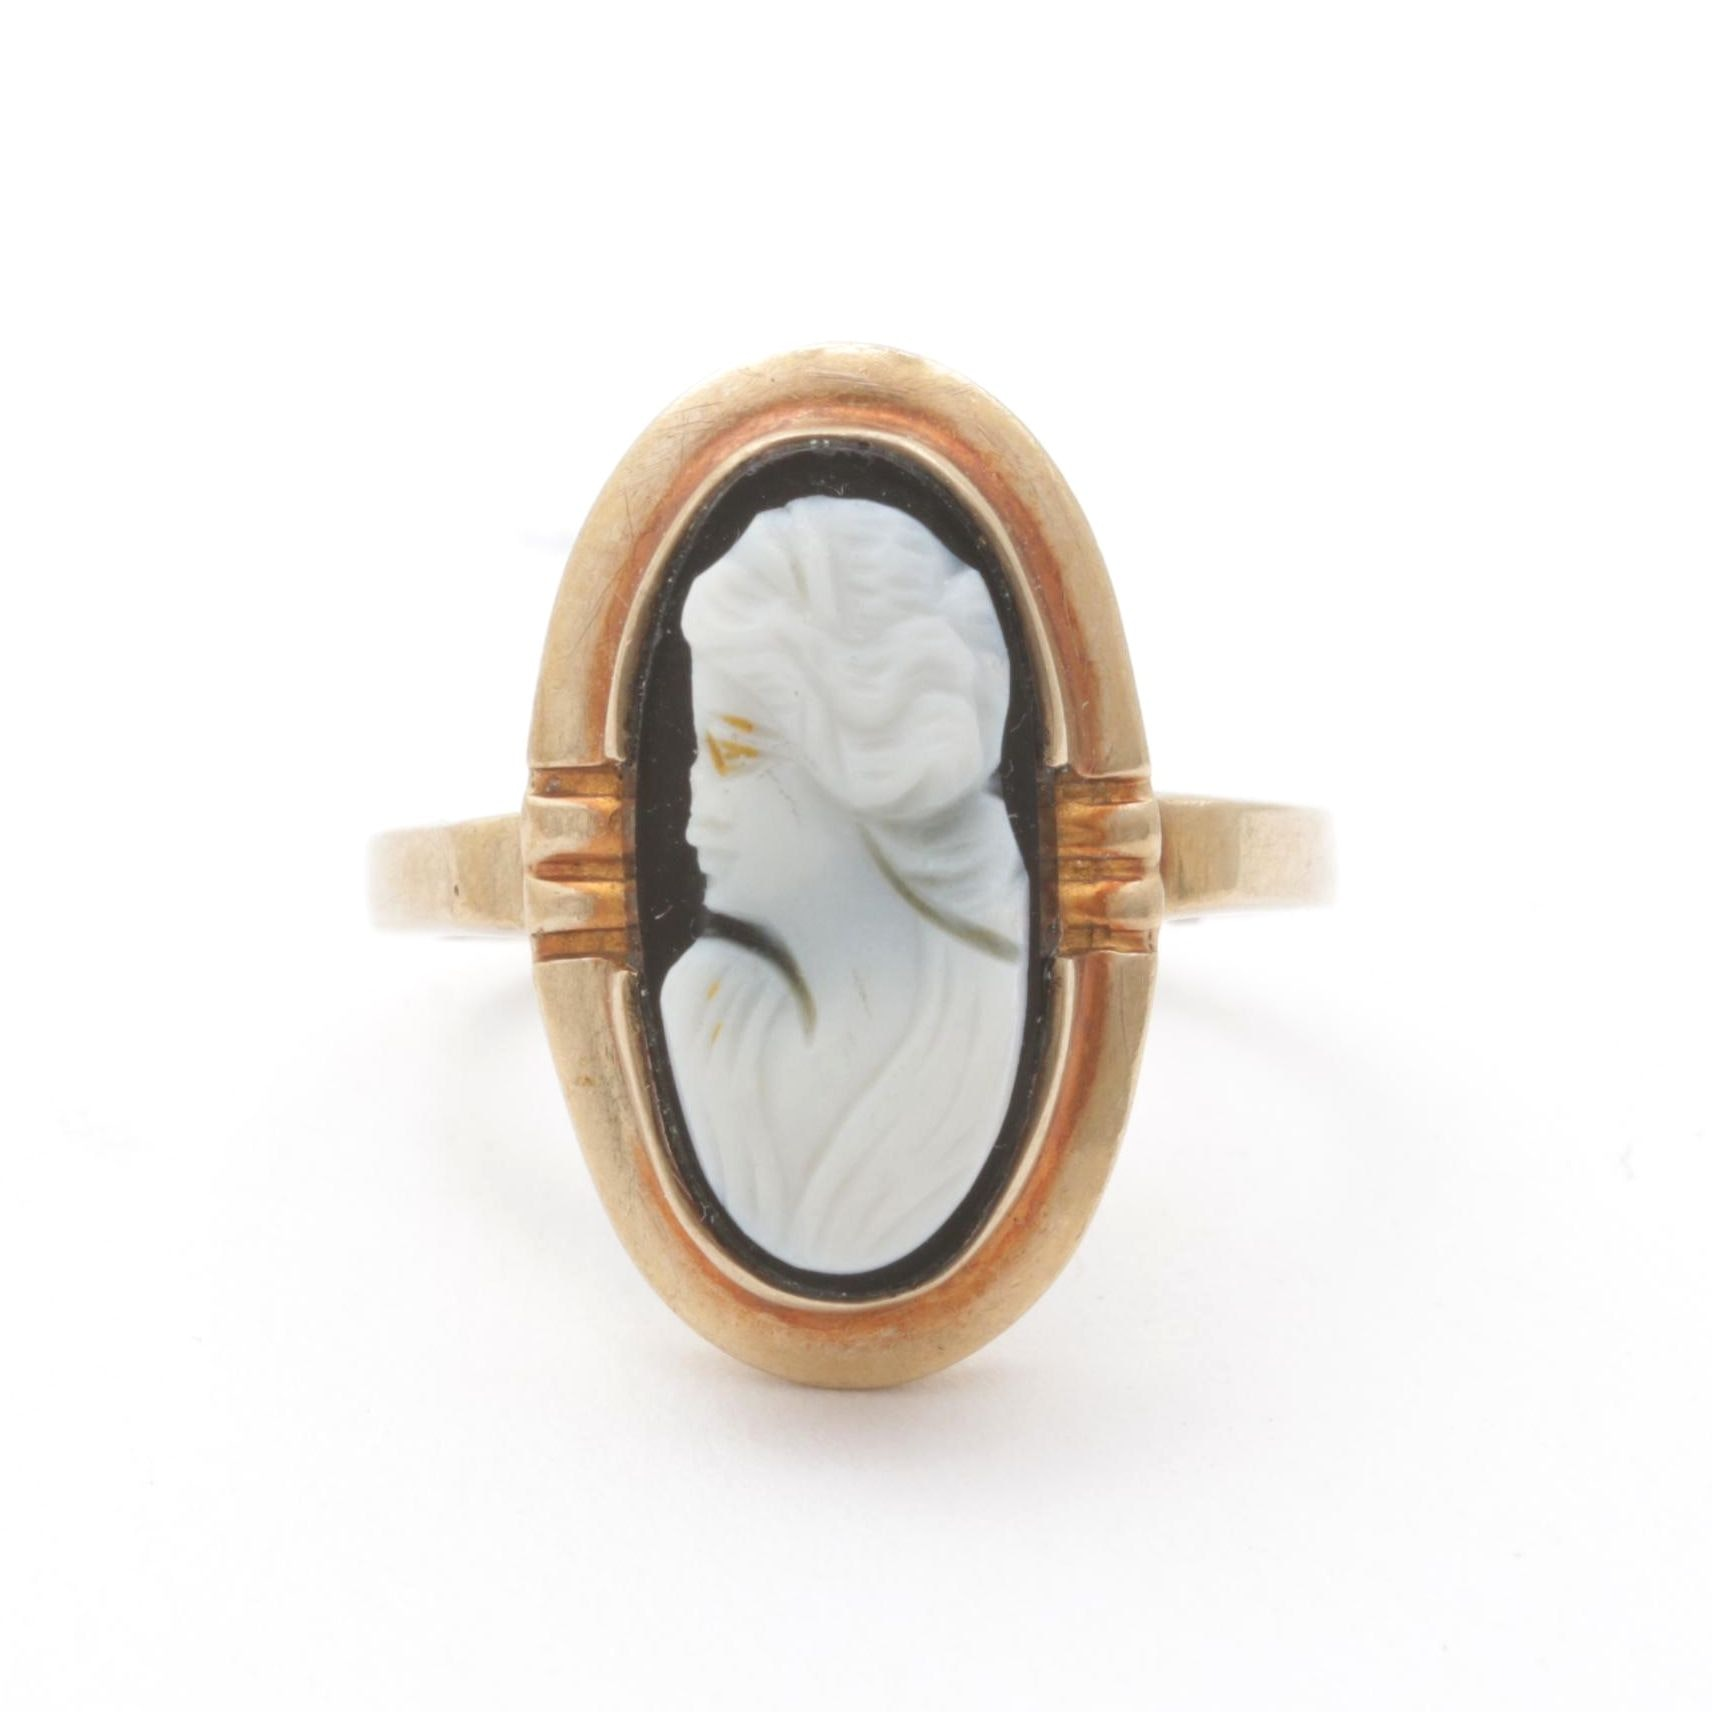 10K Yellow Gold Onyx Cameo Ring